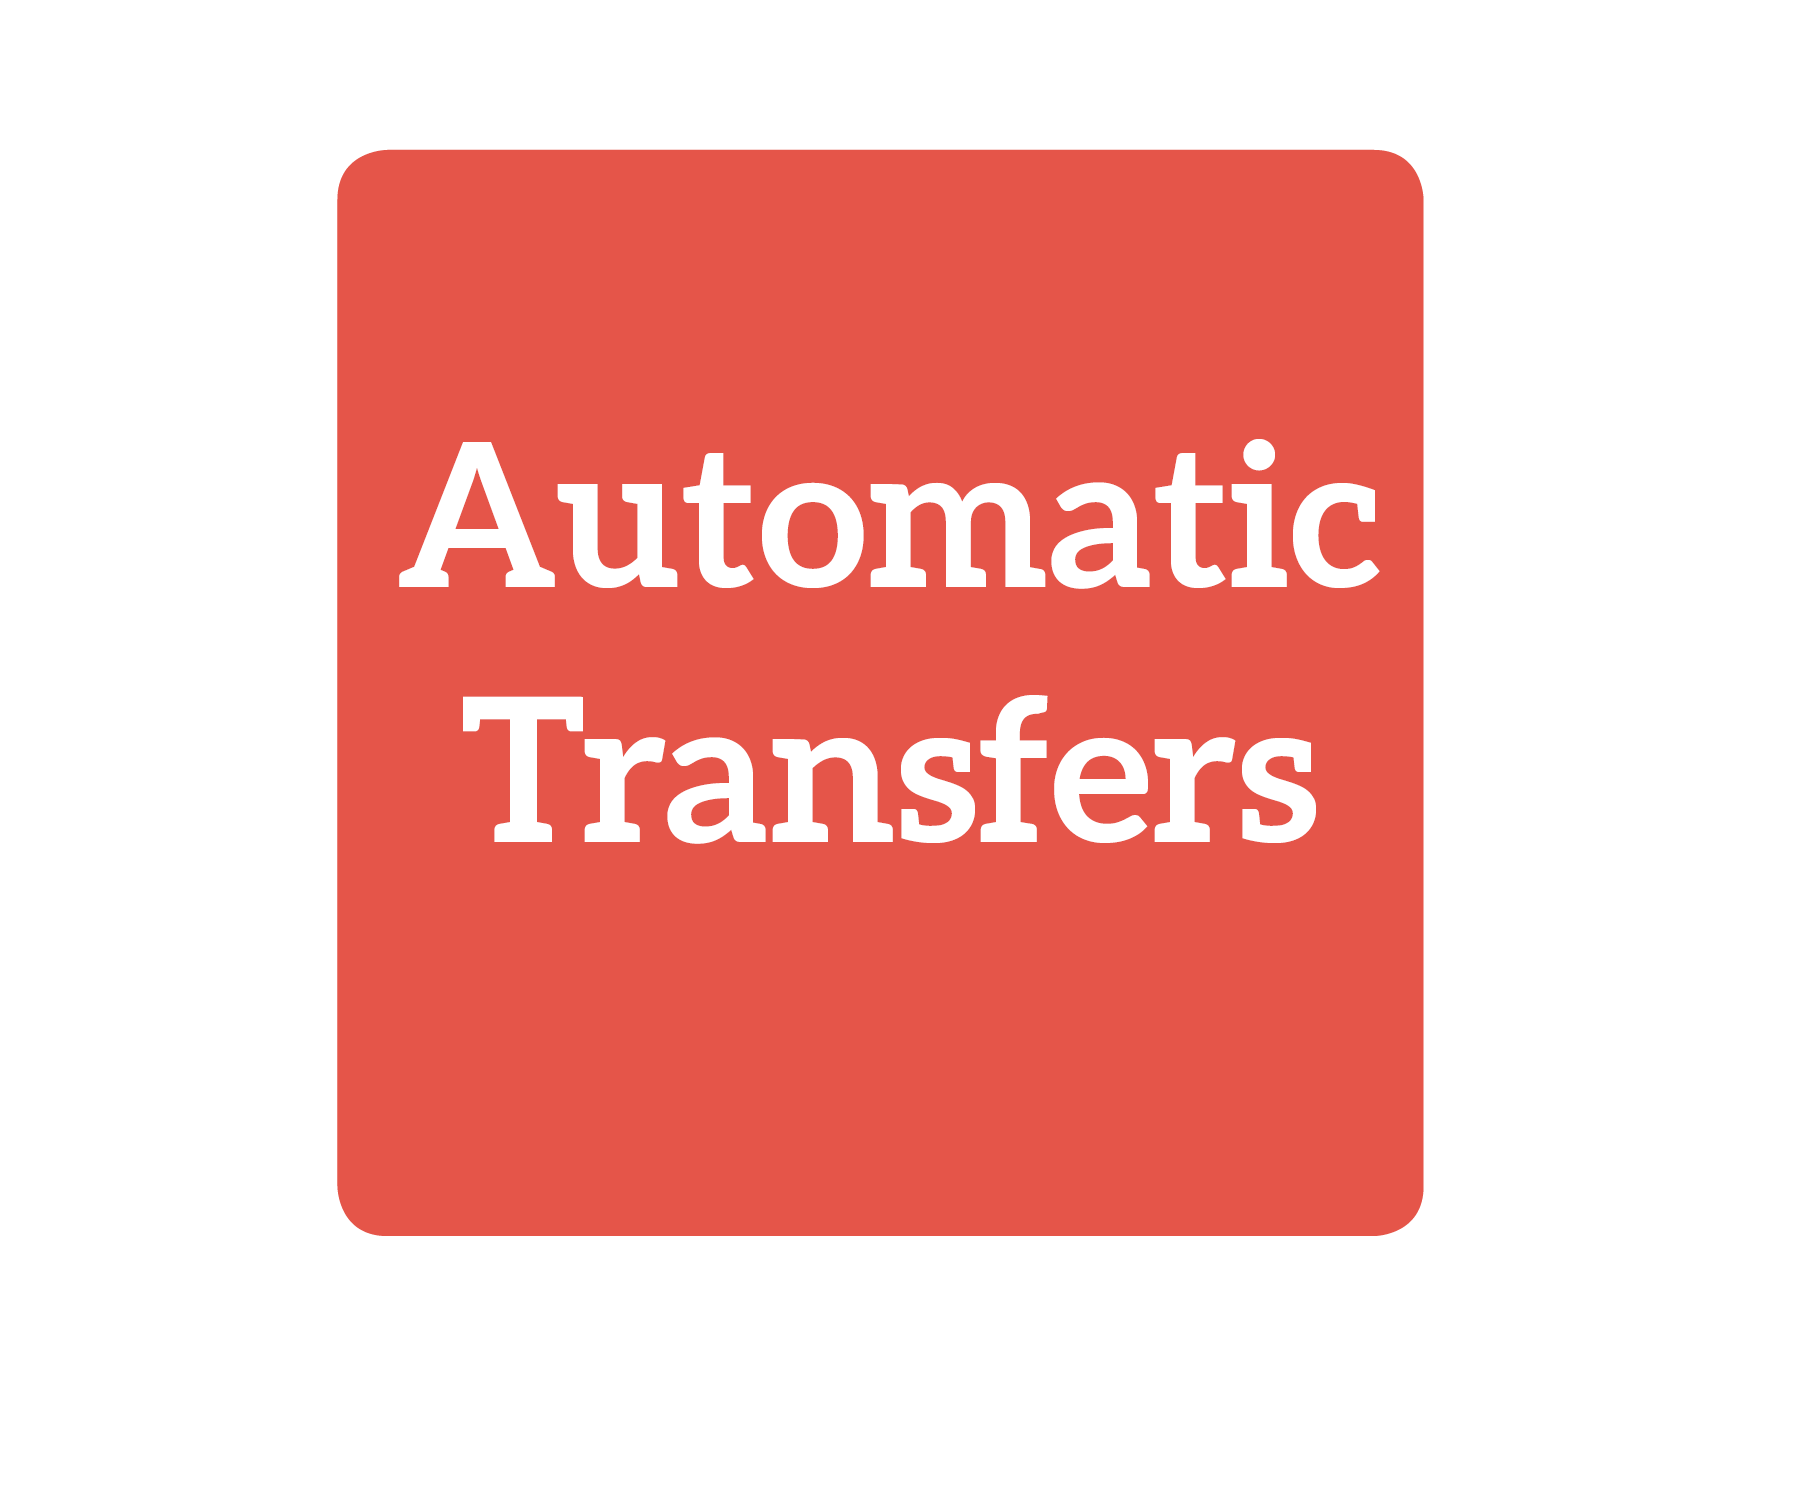 Automatic Transfers